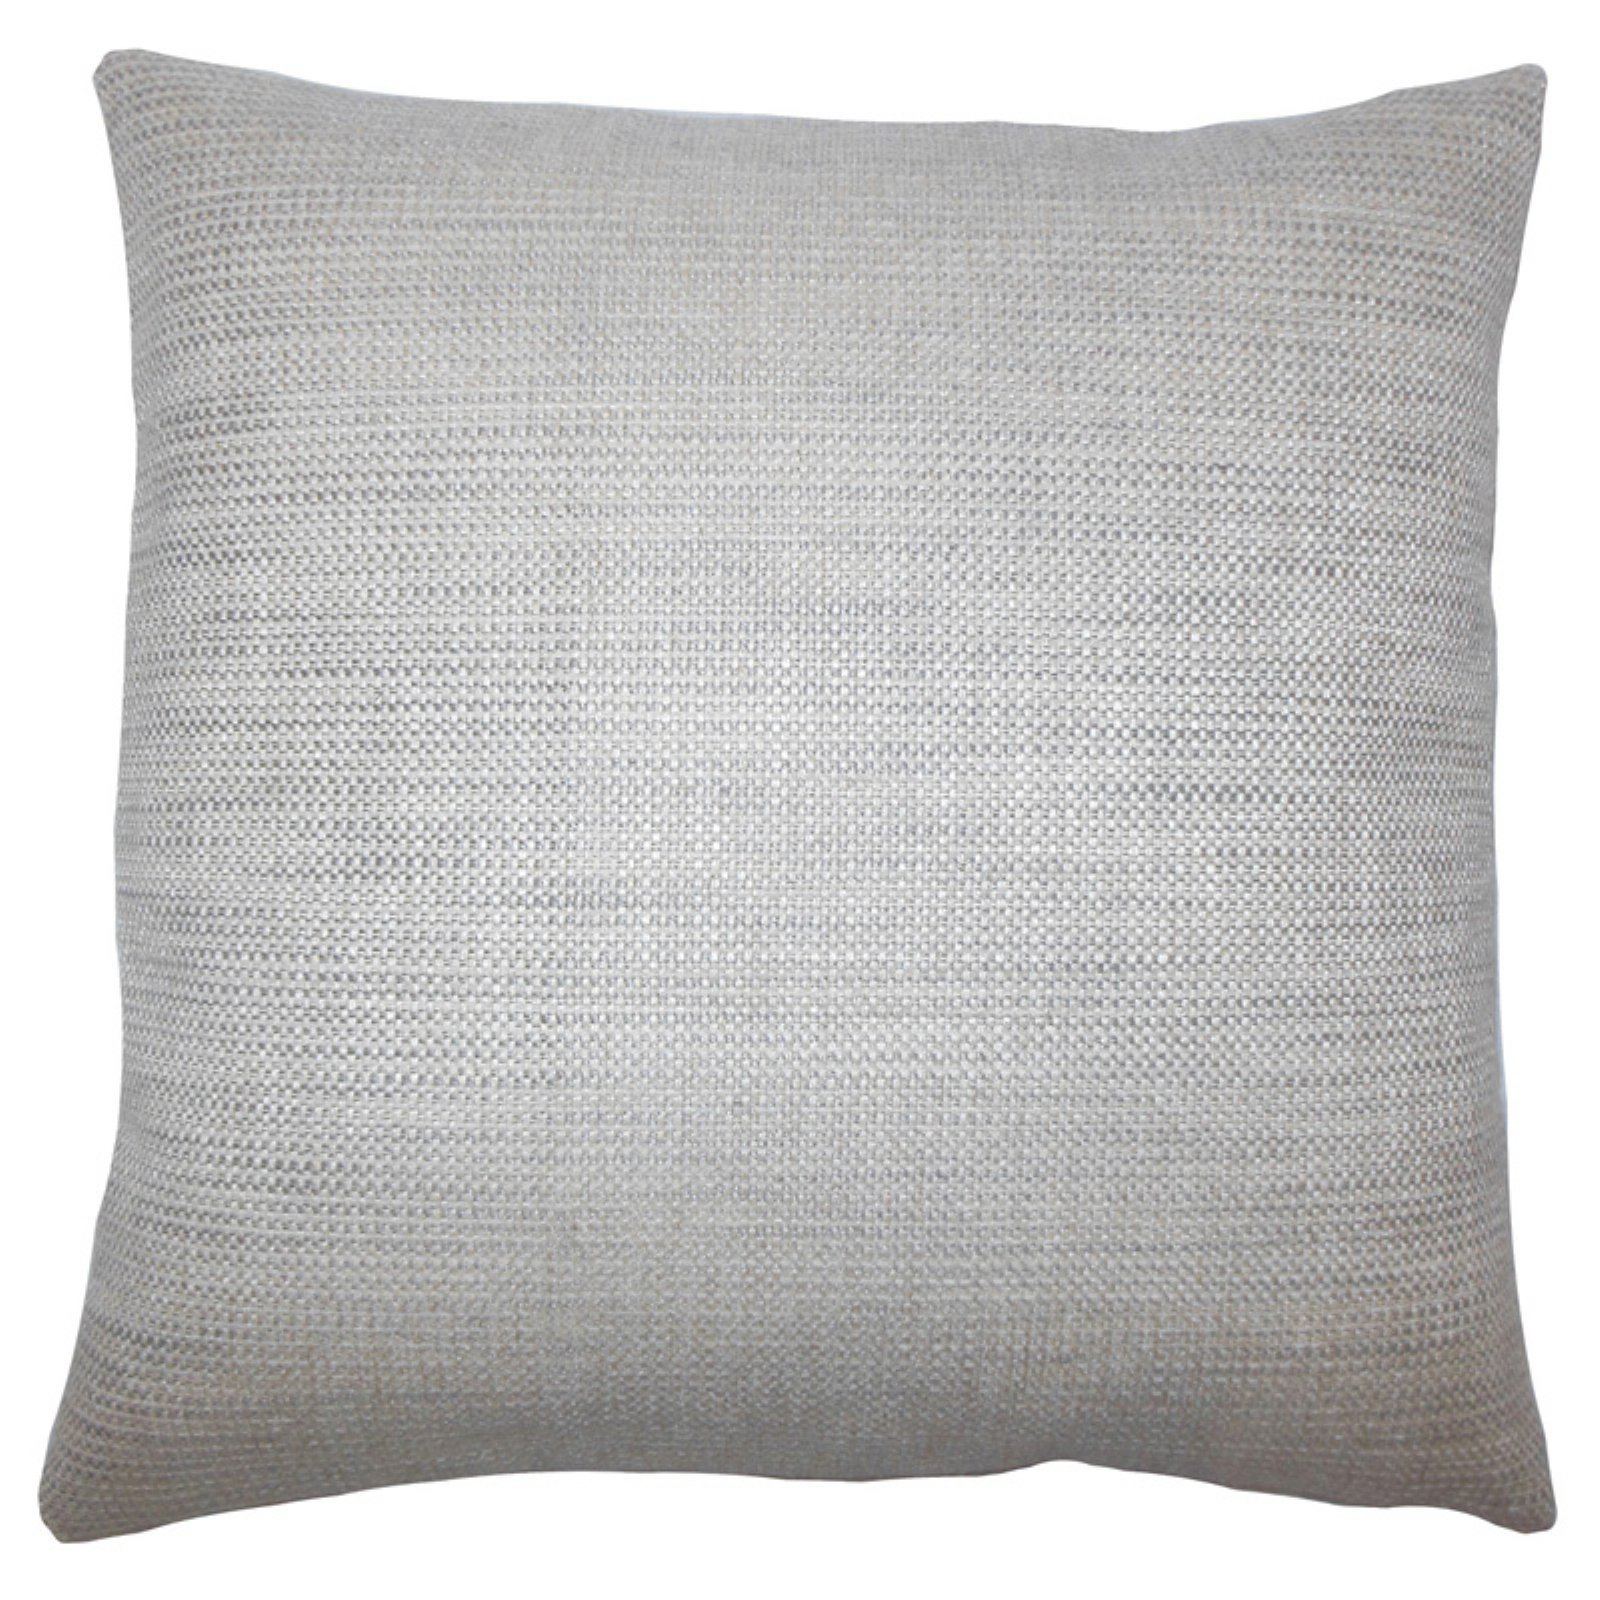 Pillow Collection Daker Decorative Pillow